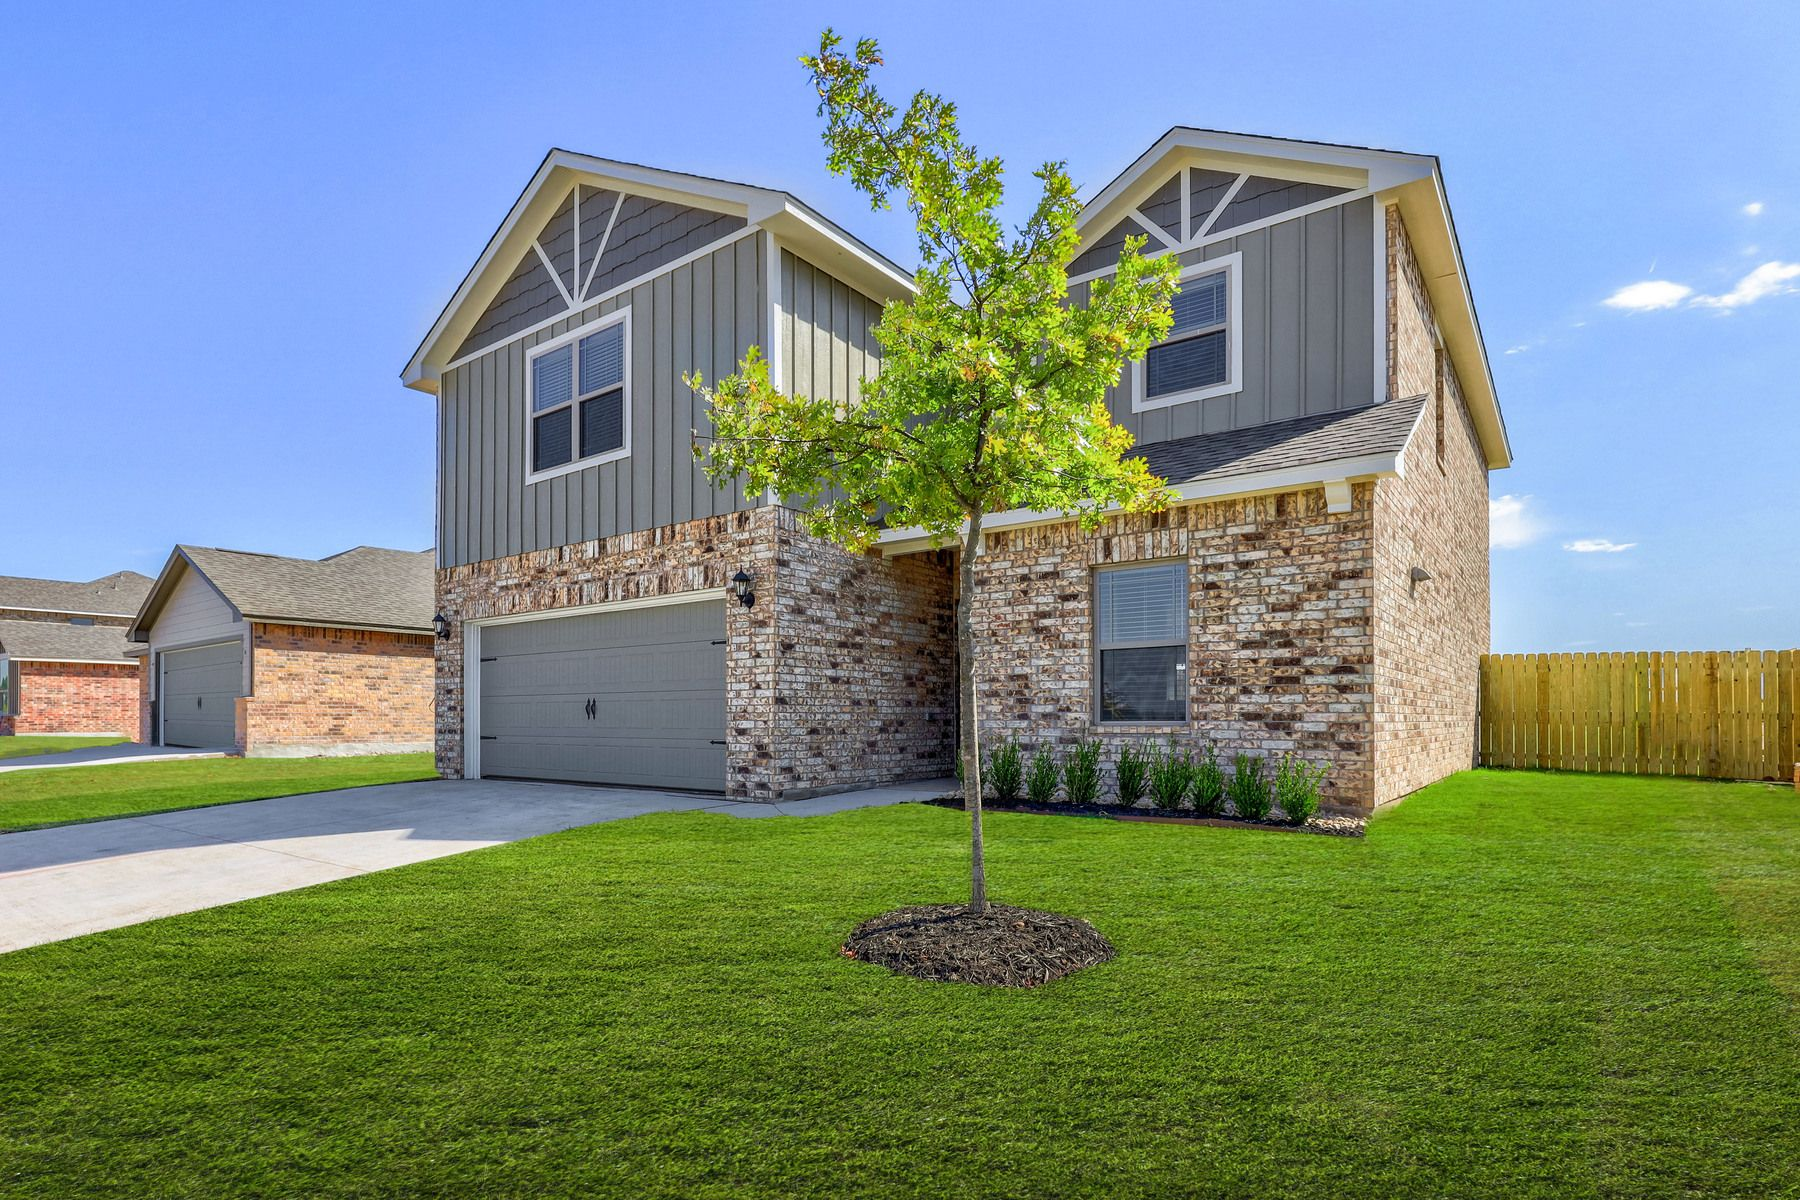 The Driftwood by LGI Homes:The Driftwood is now available at Crimson Lake Estates!